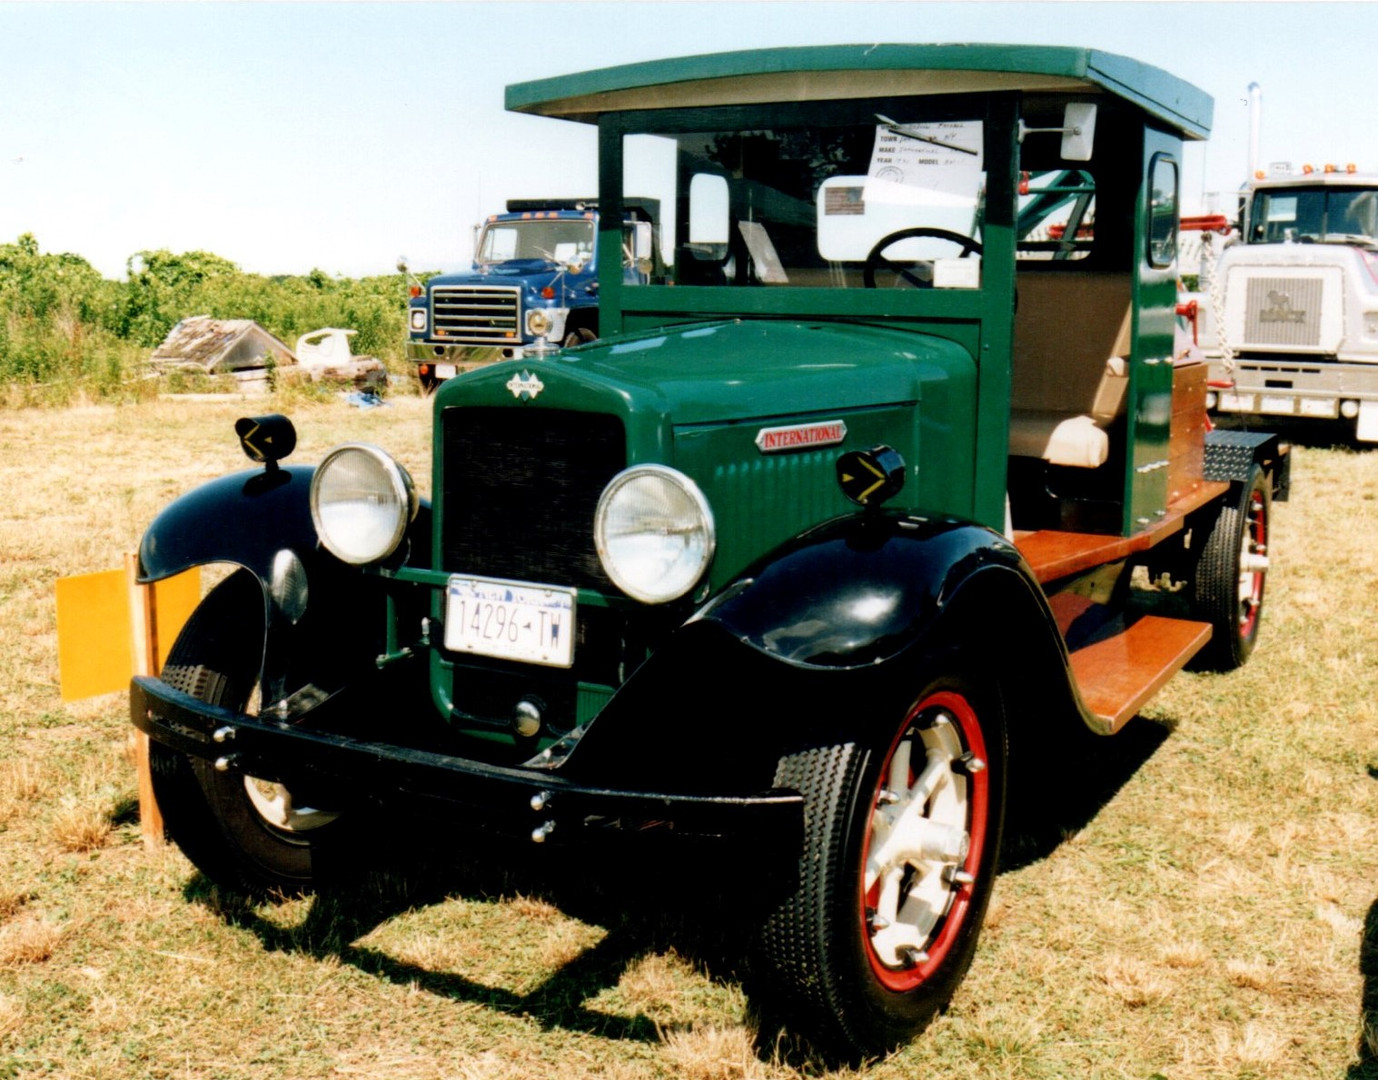 1931 International wrecker - Andrew Fornsel